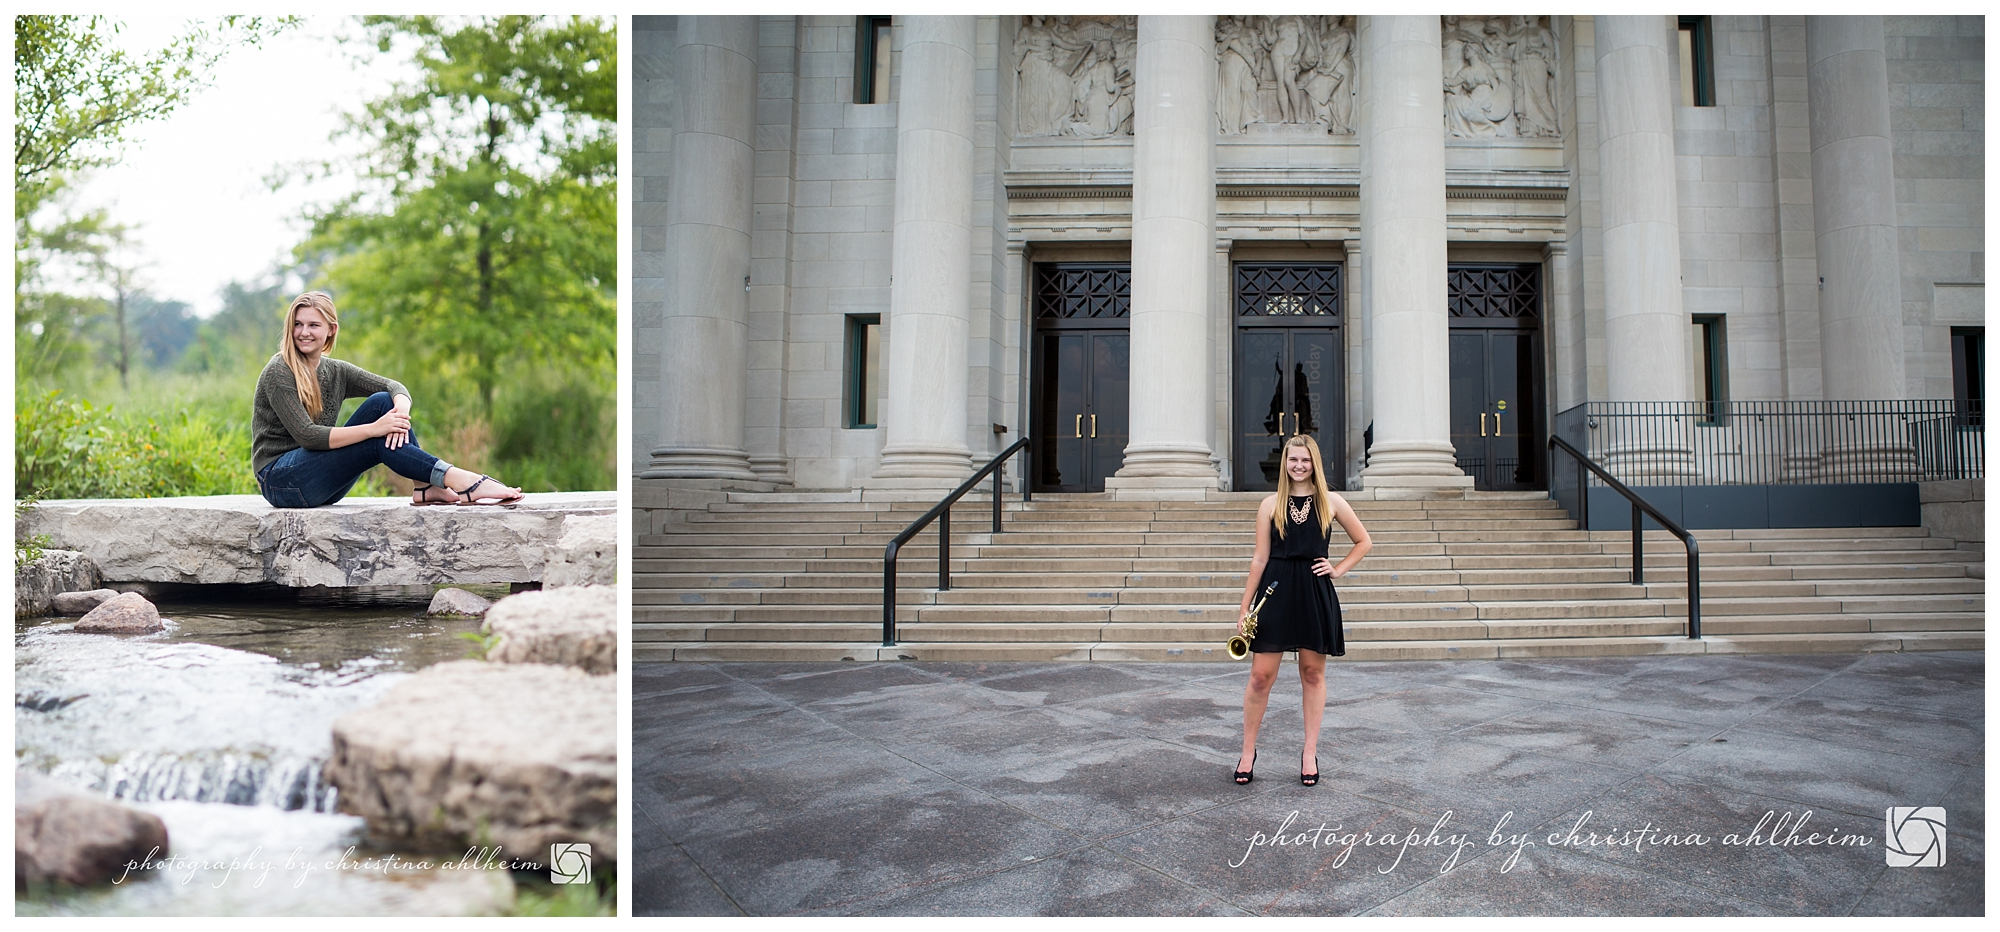 St. Louis Photography Location Ideas